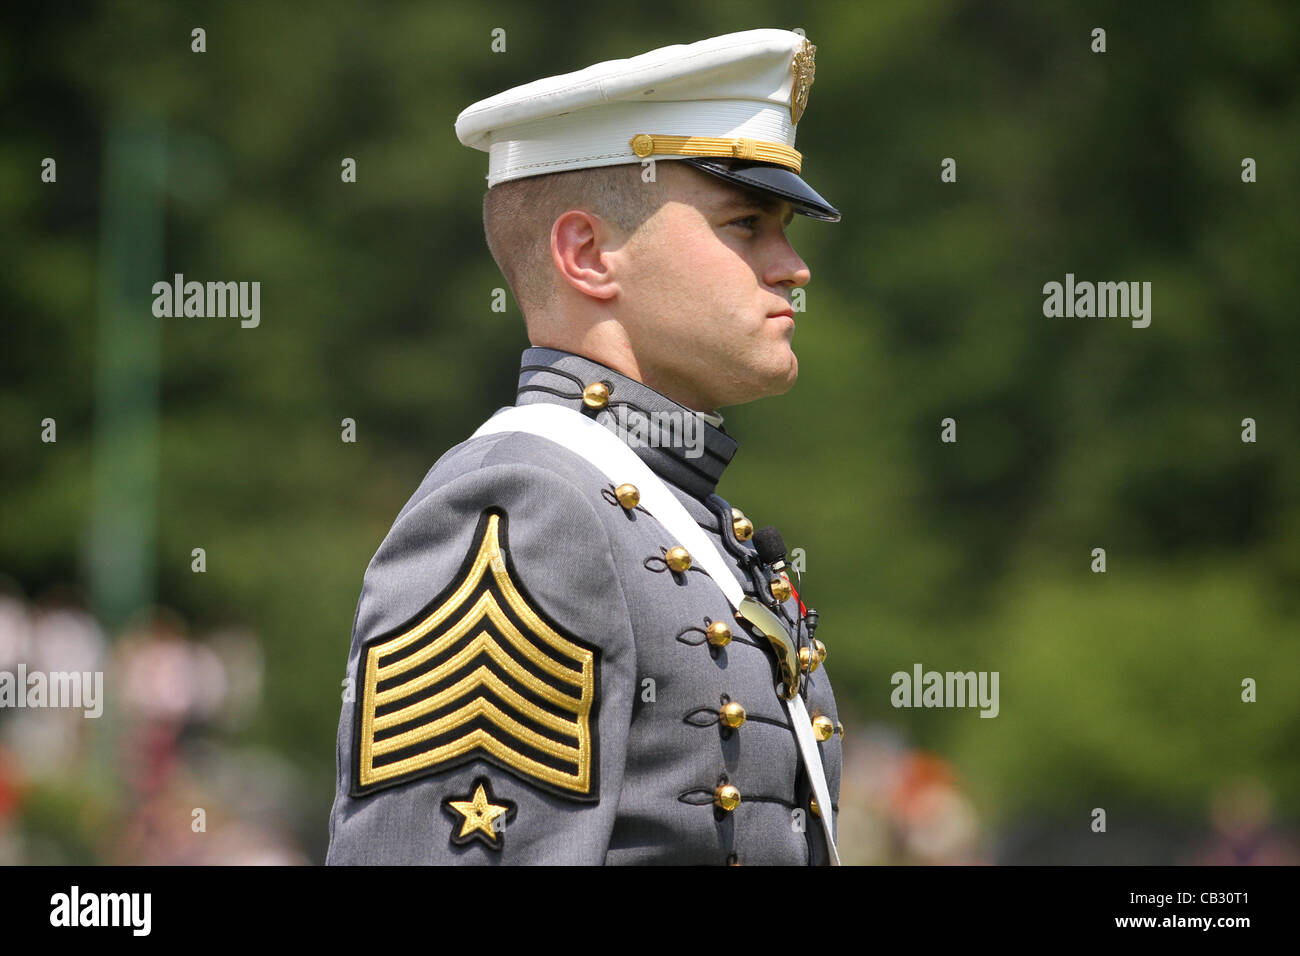 A graduating cadet from the US Military Academy class of 2012 stands during ceremonies May 26, 2012 in West Point, - Stock Image